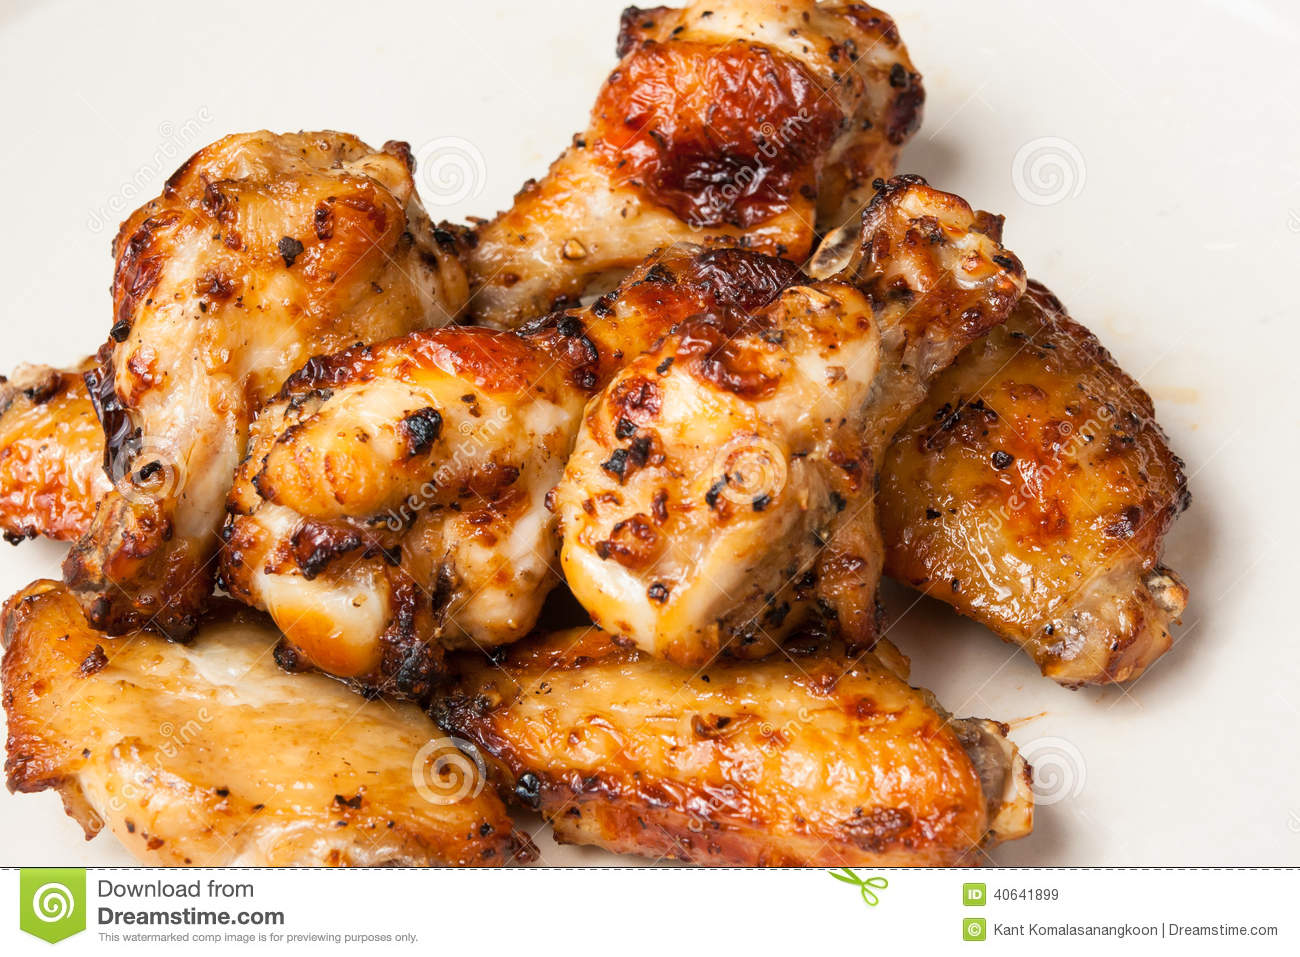 Chicken wing grill